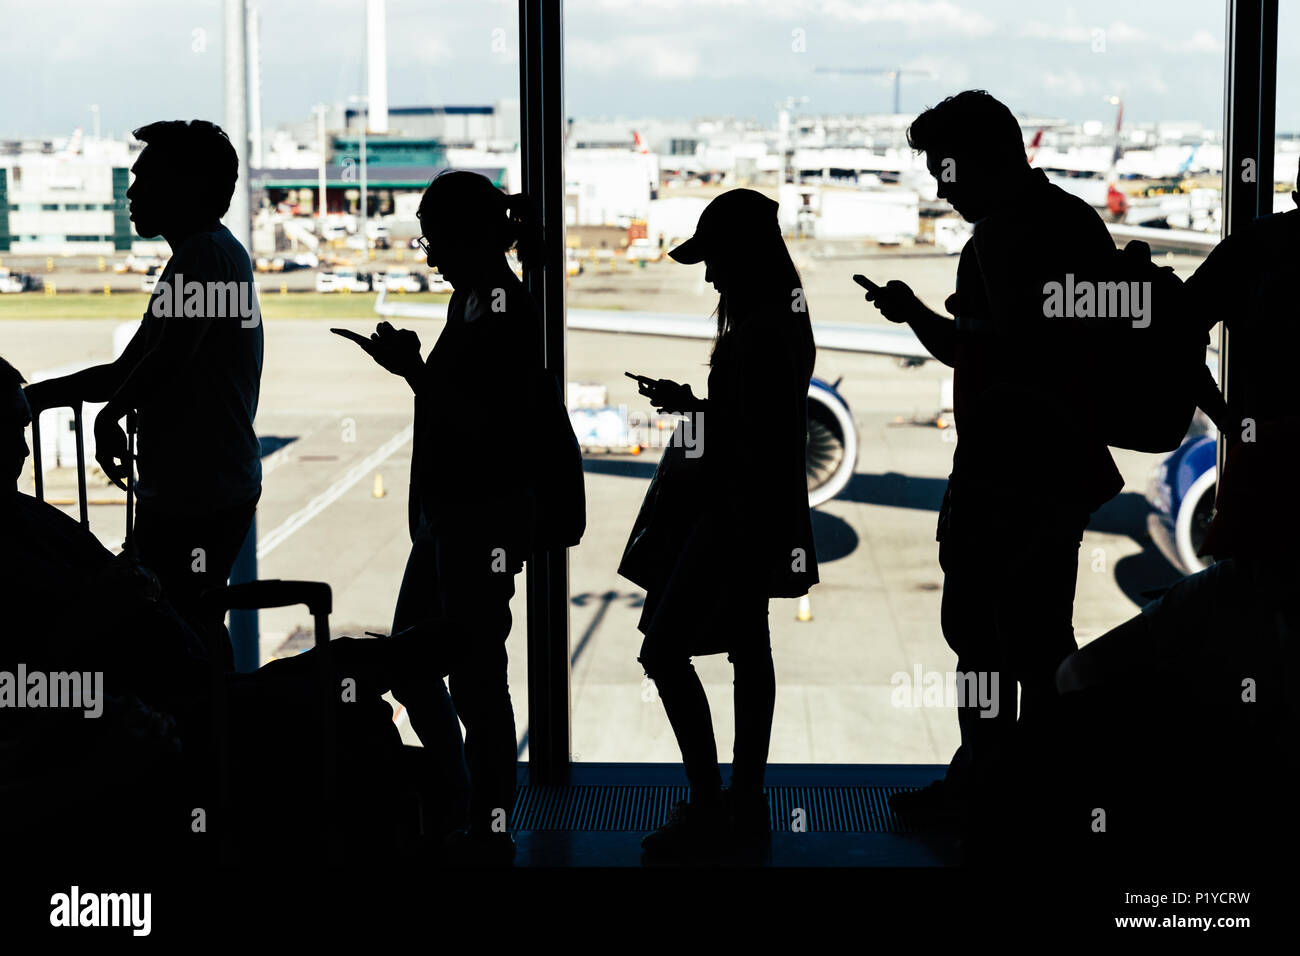 LONDON - MAY 27, 2018: People by windows waiting to board plane at London Heathrow airport - Stock Image